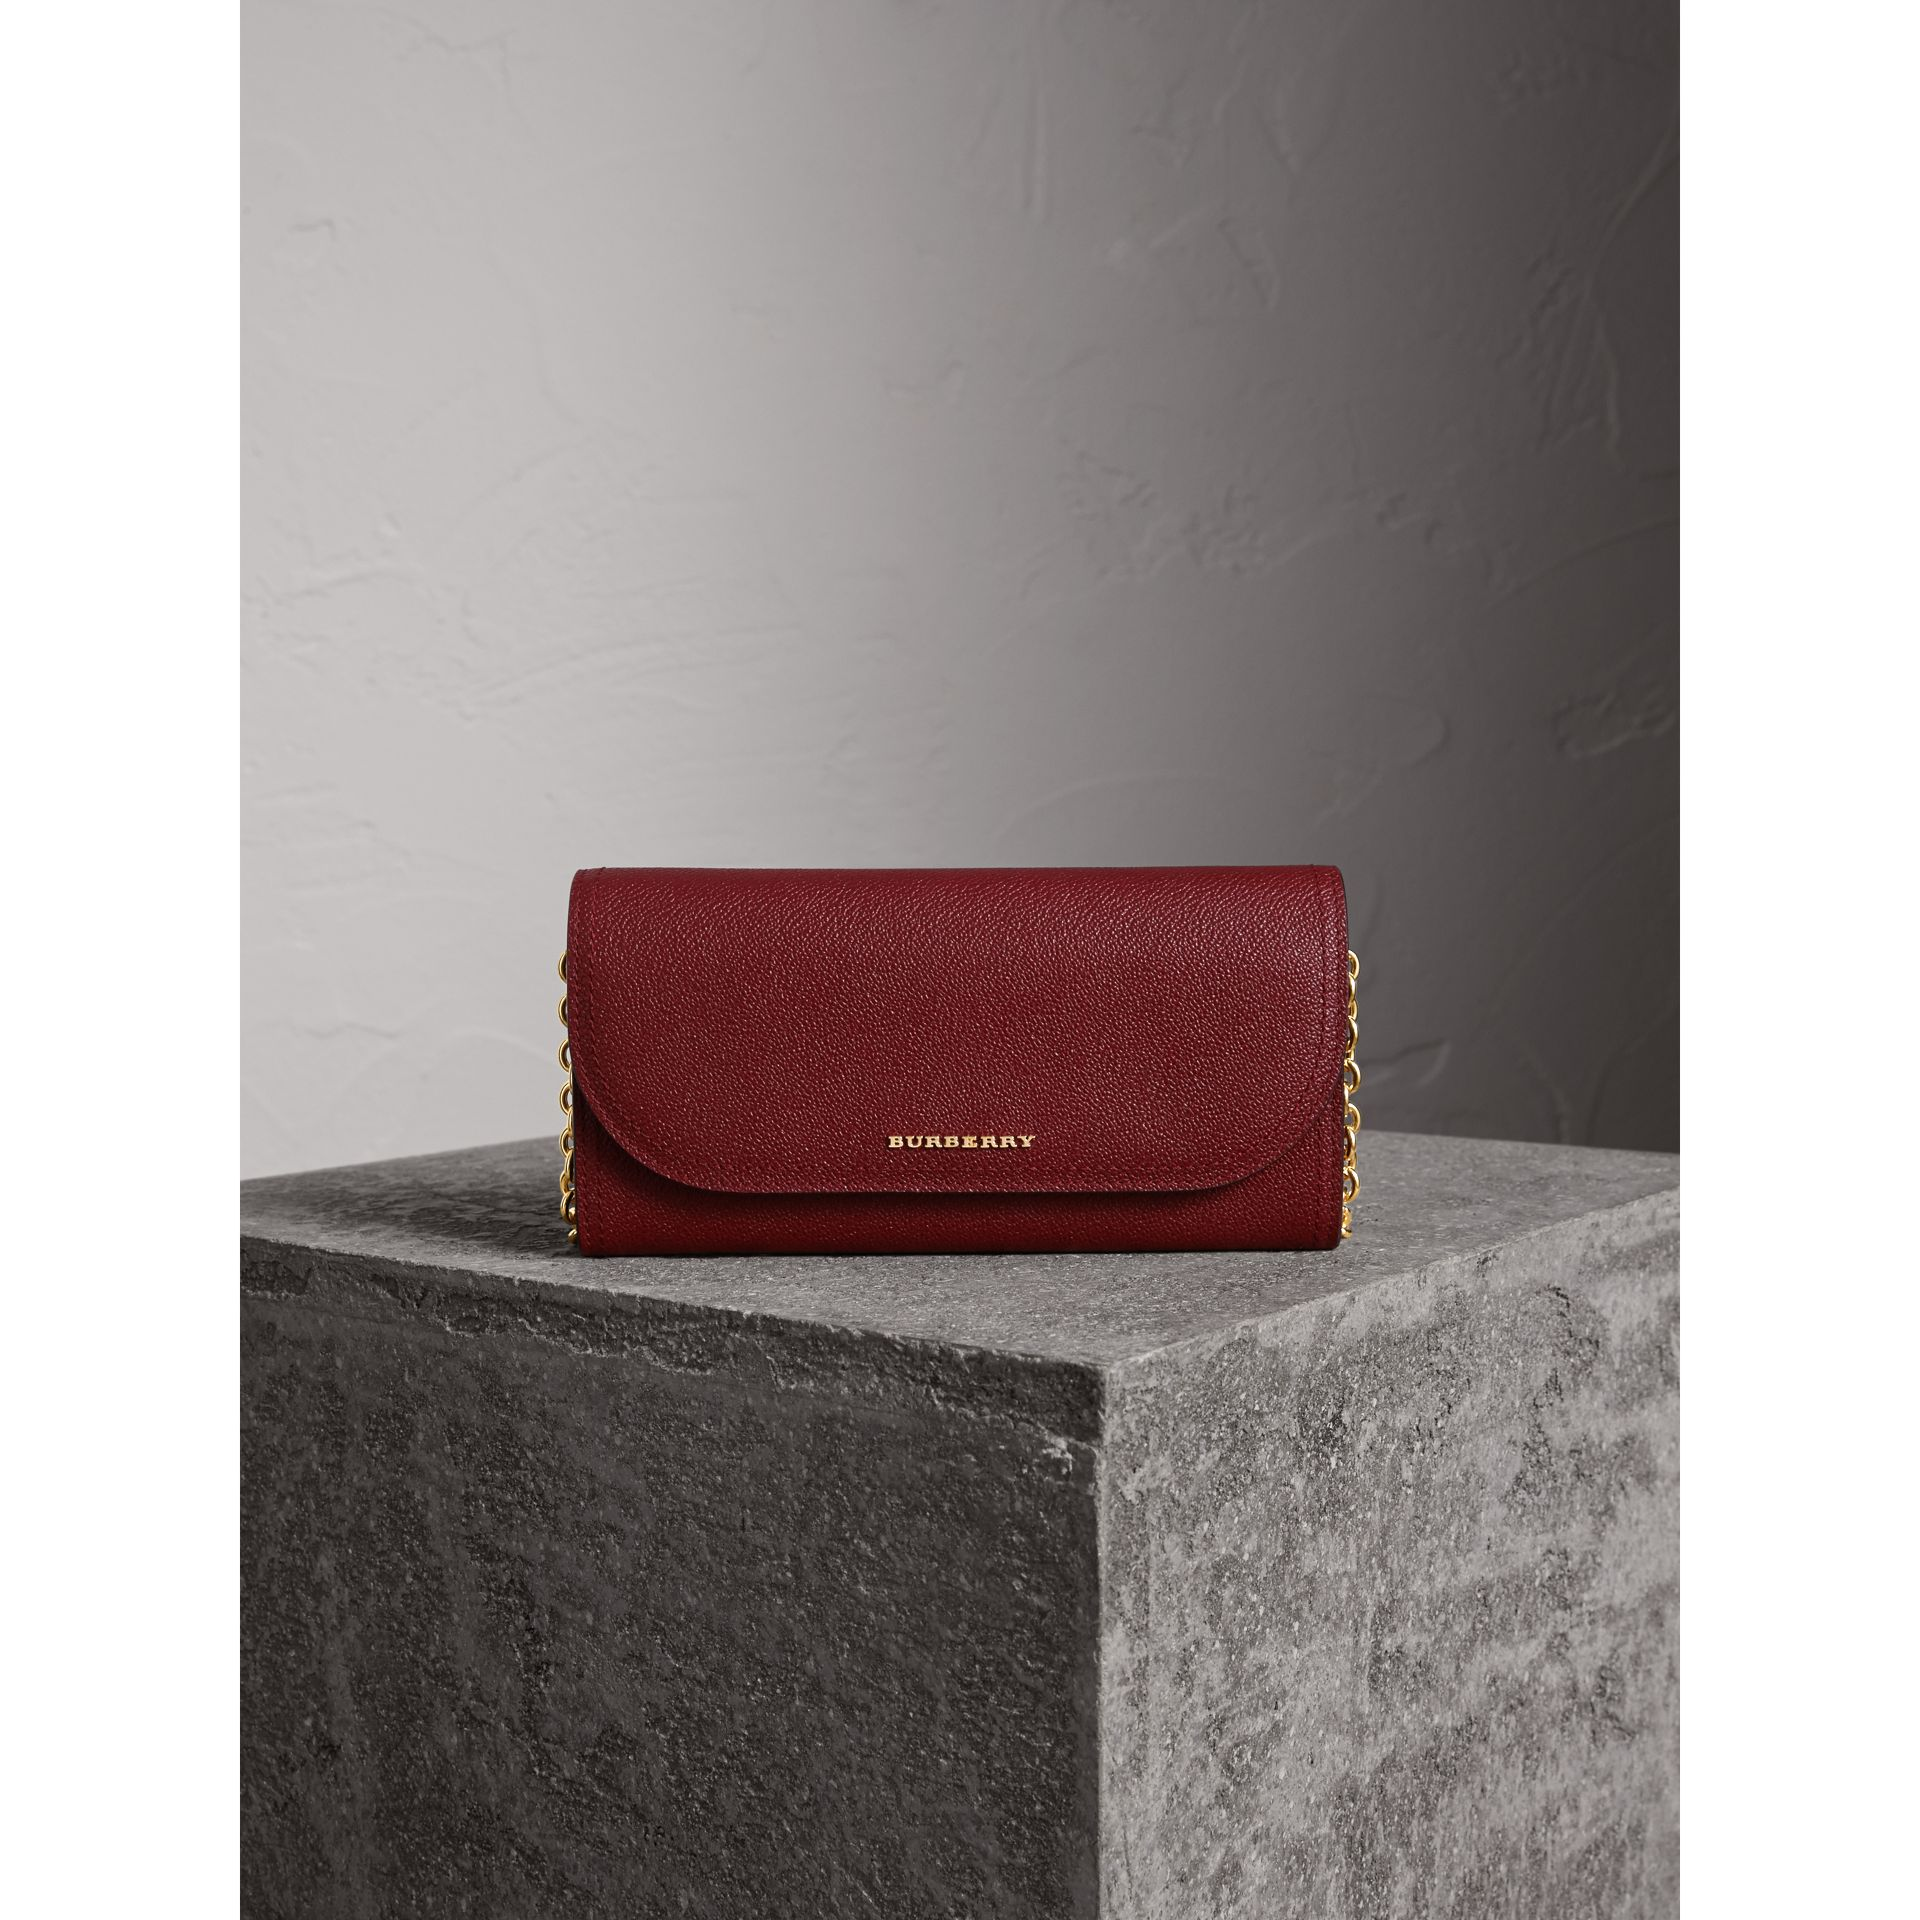 Leather Wallet with Chain in Burgundy - Women | Burberry - gallery image 2